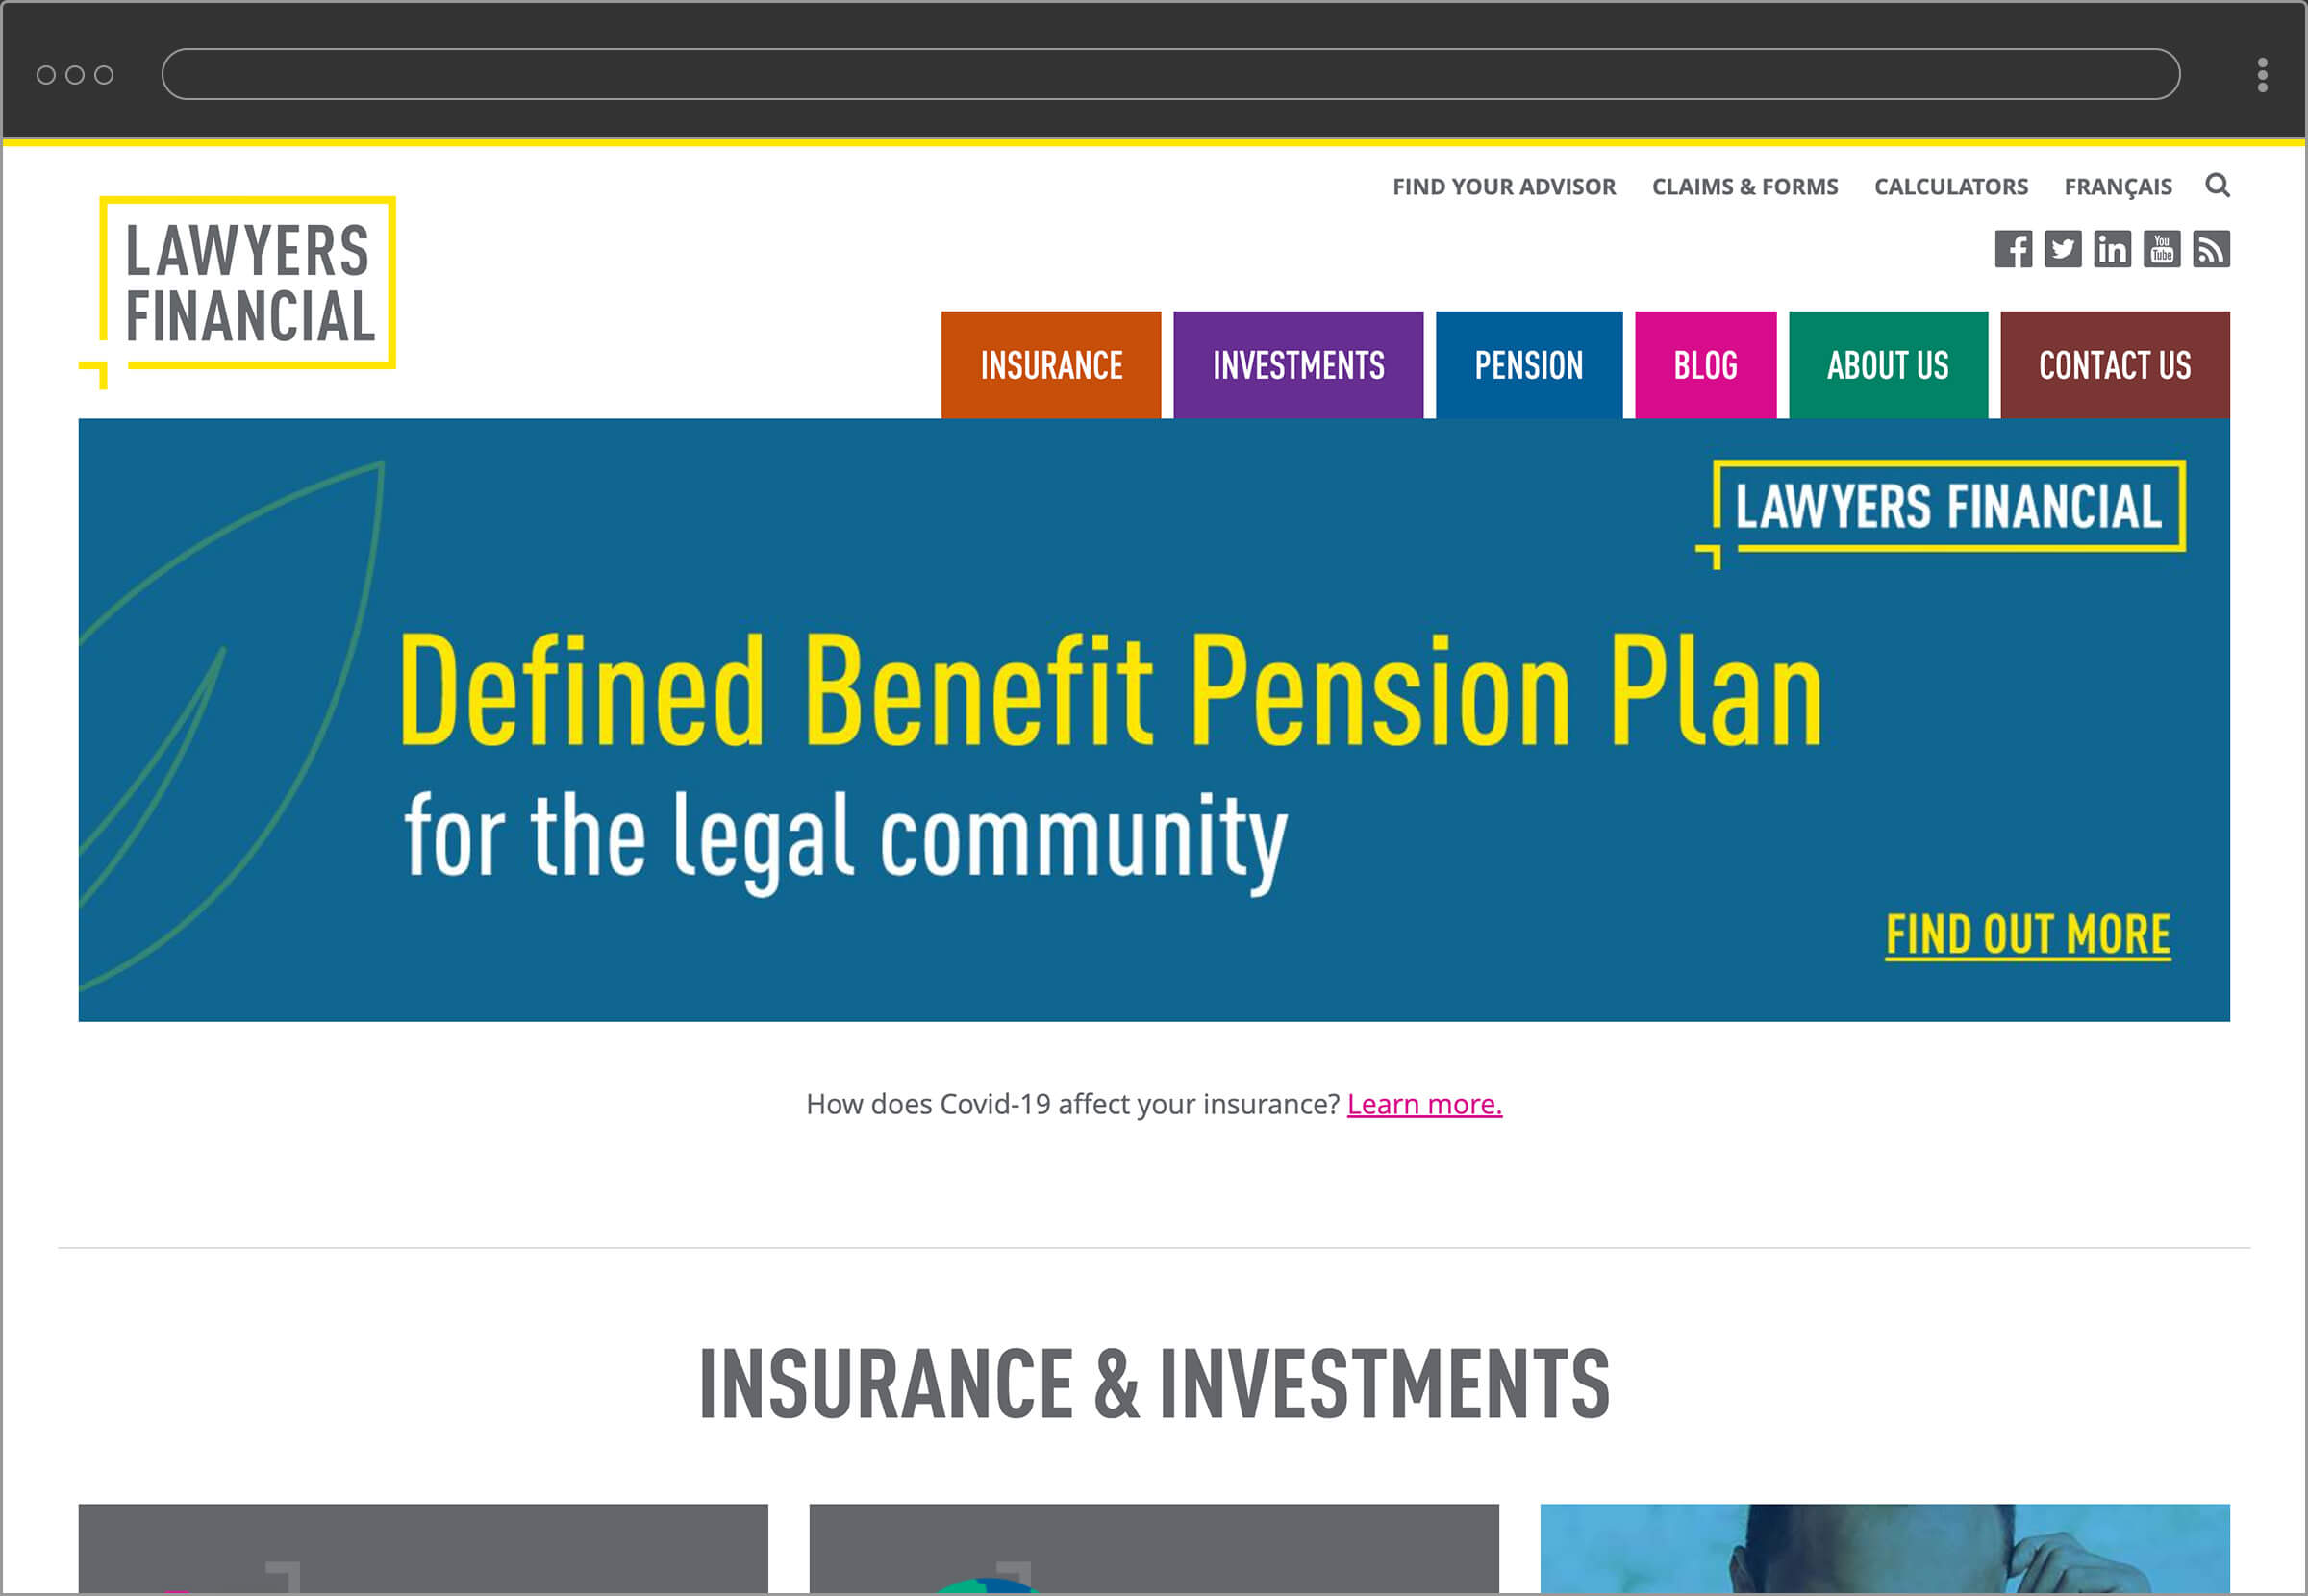 Lawyers Financial website home page